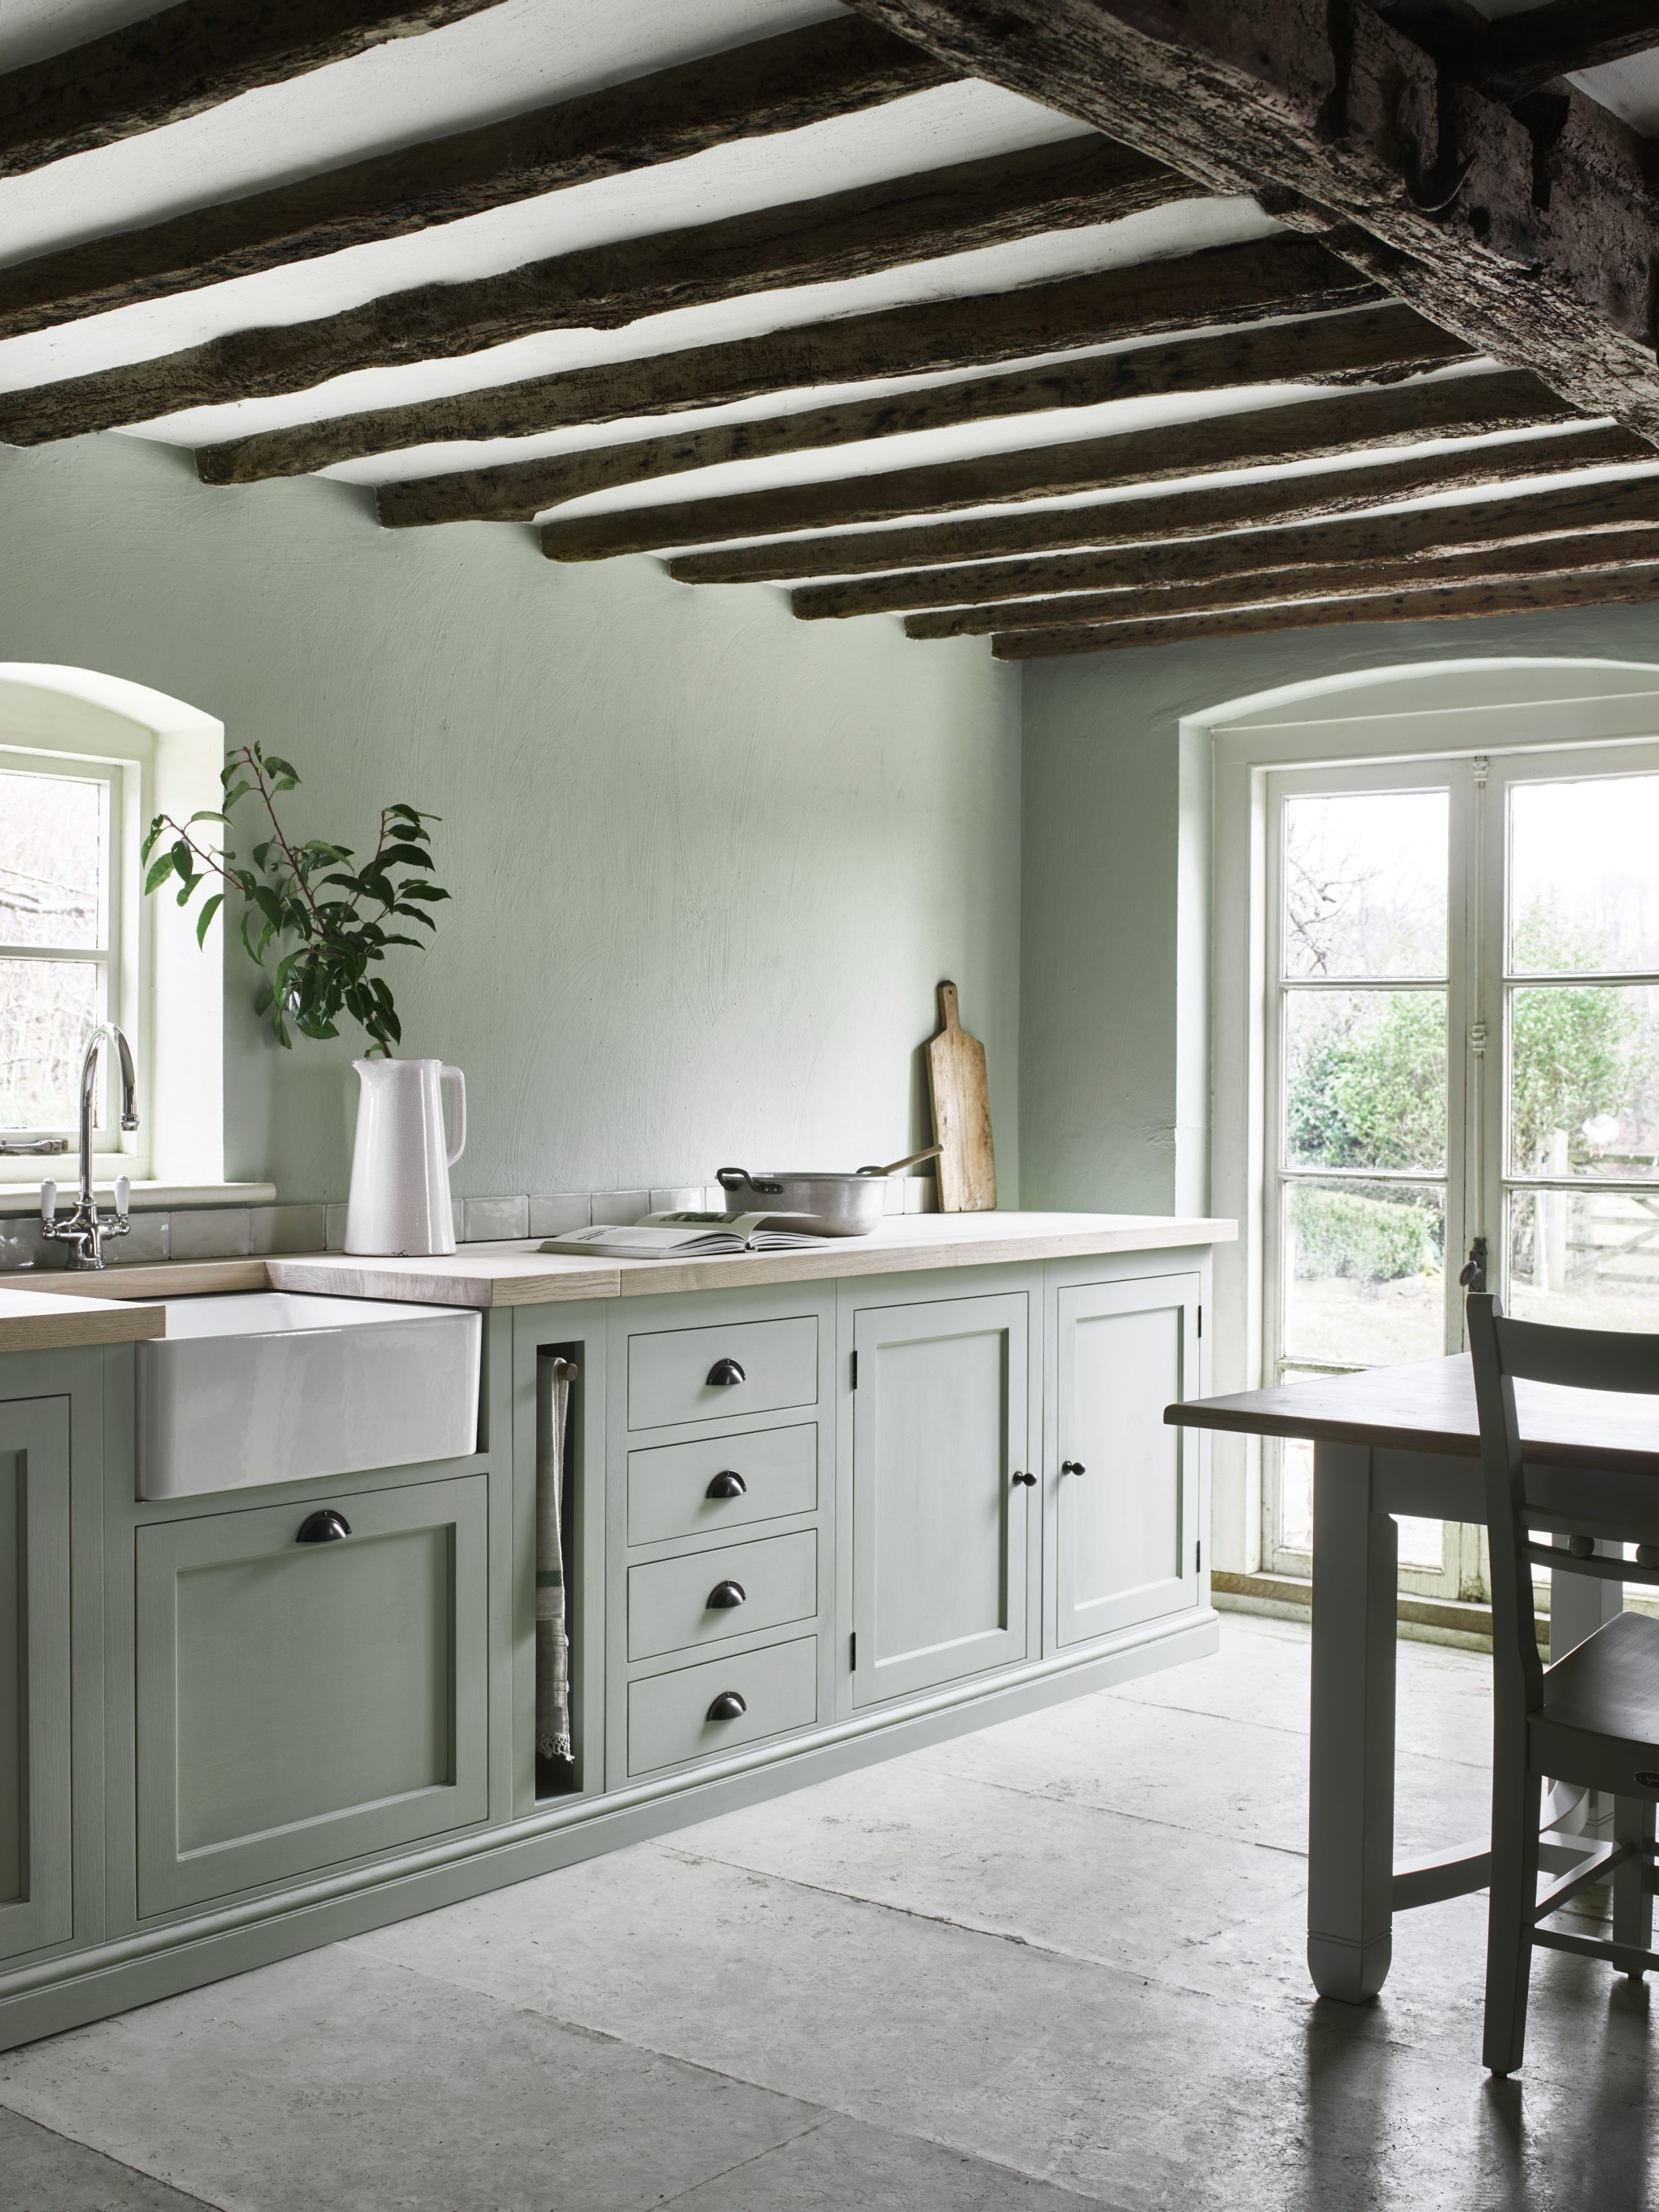 Neptune Henley Kitchen hand-painted in Sage from £14000 & 7 Ways To Create A Country Kitchen Fit For 2018 - Kitchen Design Ideas